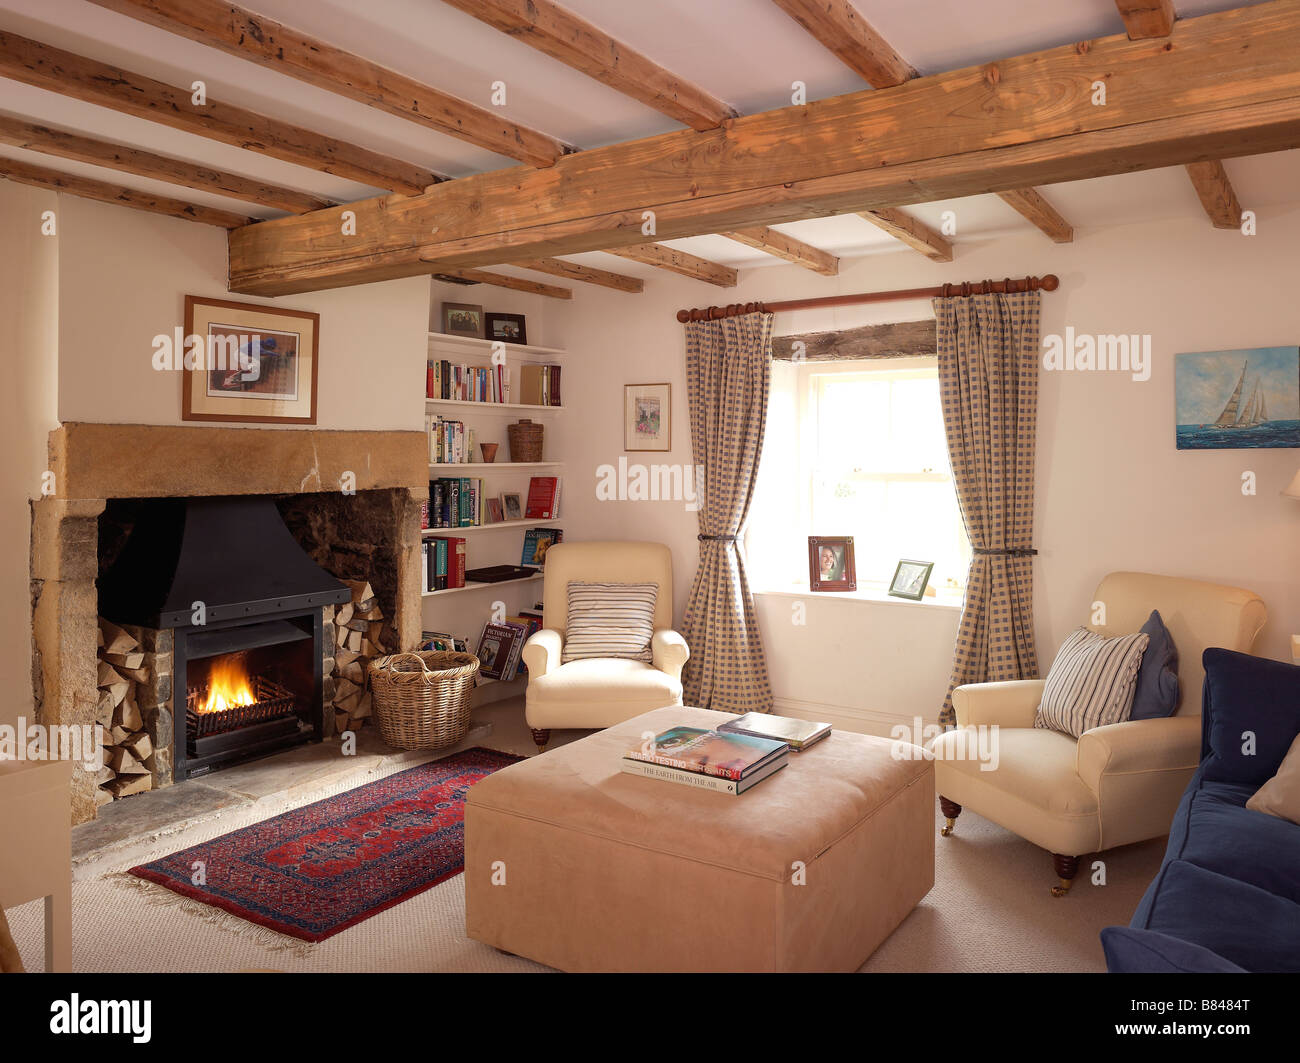 Country Style Living Room With Lit Open Fire And Cream